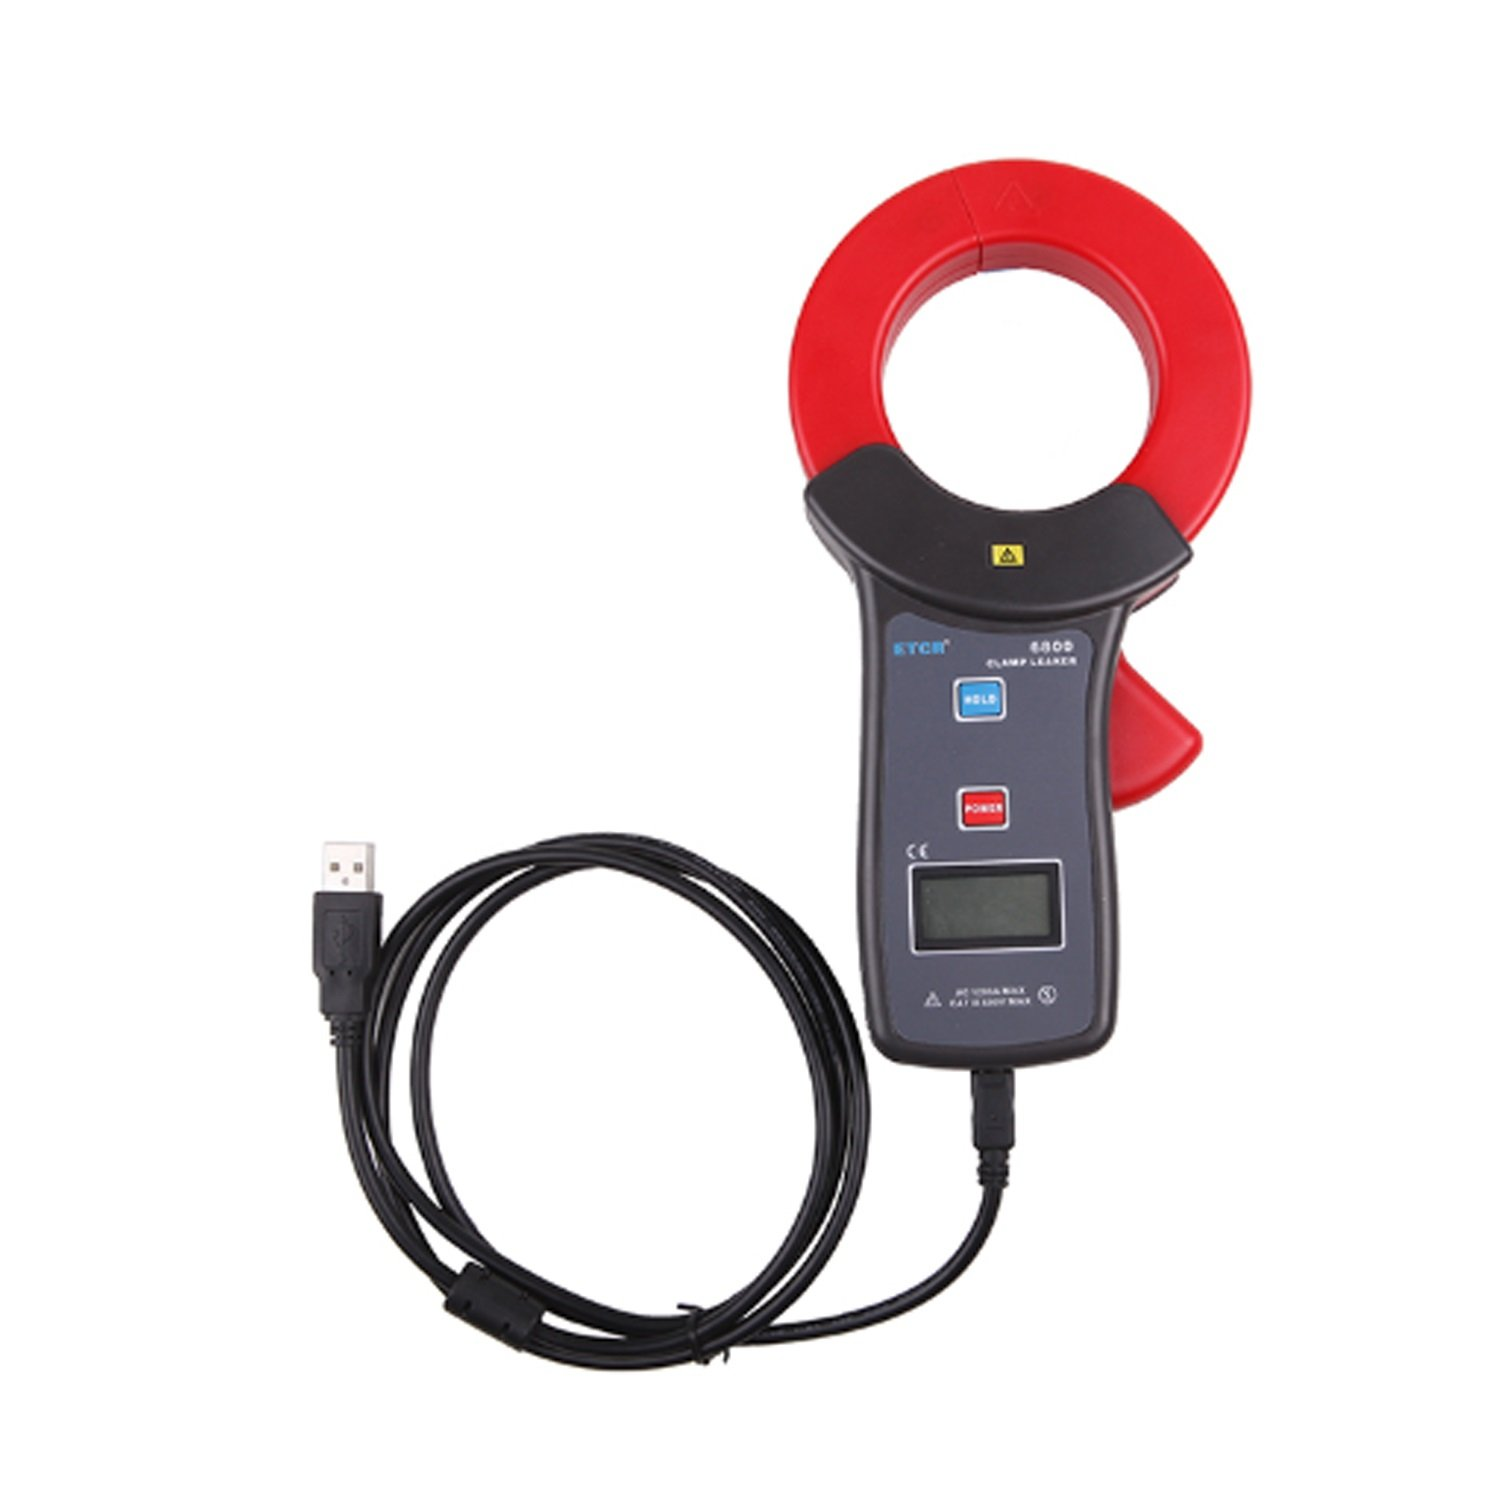 Lanlanmaoyimg Ammeter High Accuracy Clamp Leaker Meter 0.00mA~1200A with USB ETCR6800 Precision Measurement